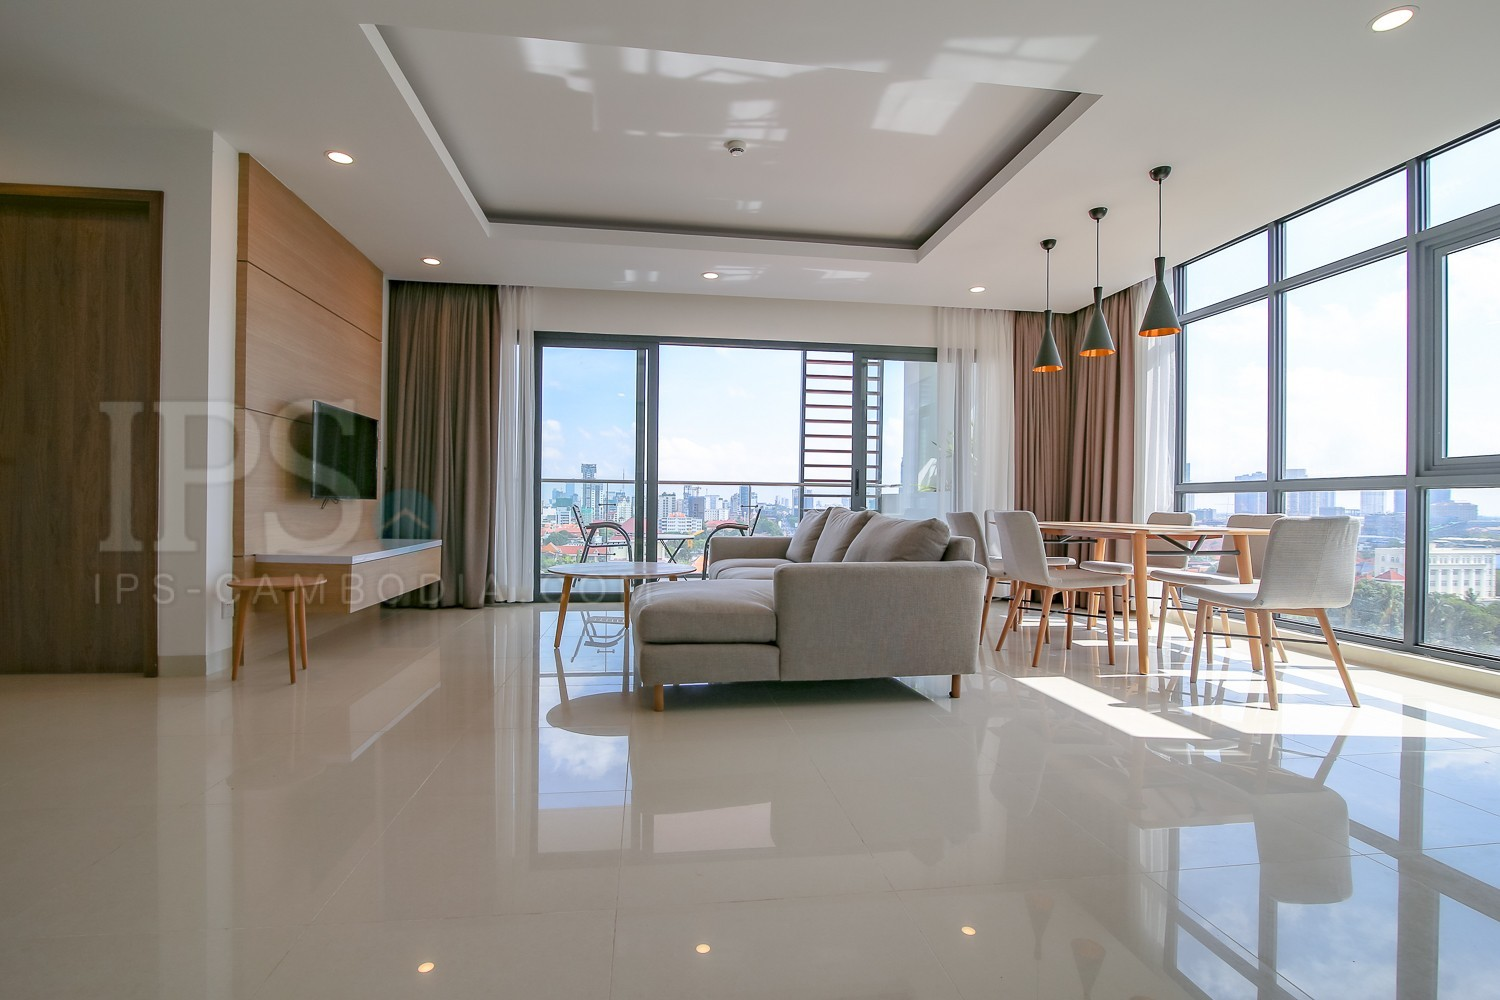 3 Bedroom Apartment For Rent- Tonle Bassac , Phnom Penh